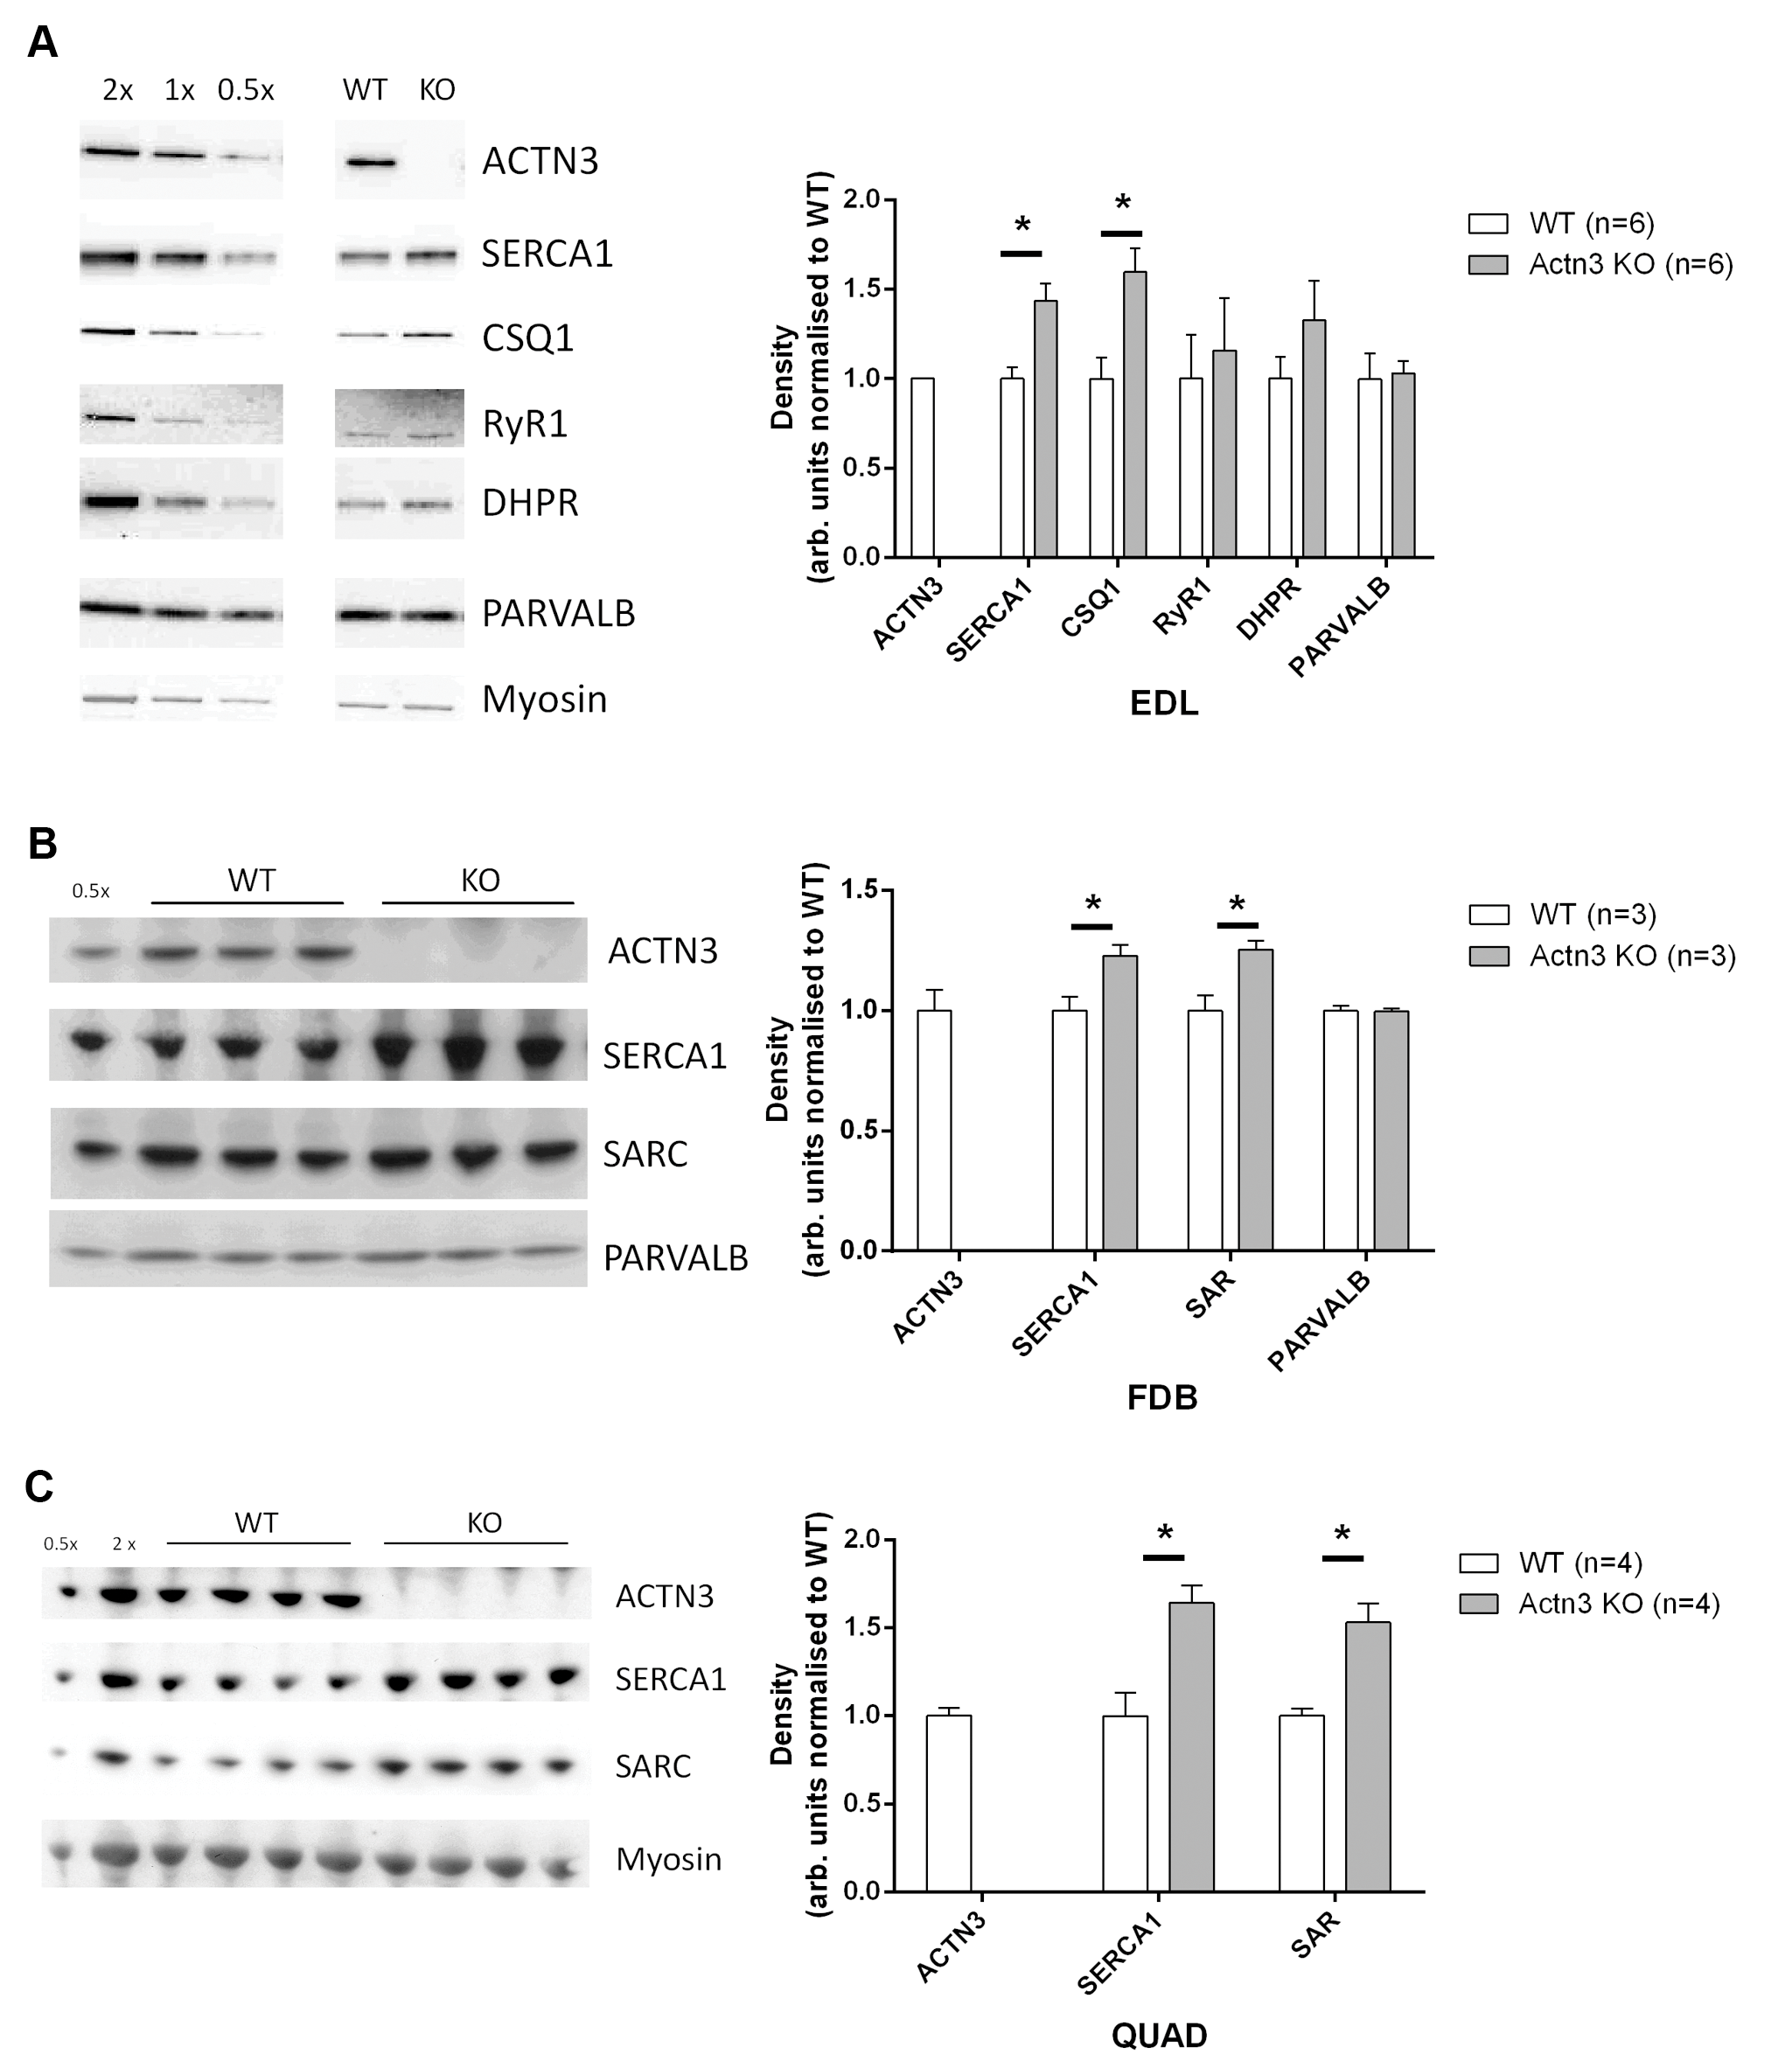 Expression of major Ca<sup>2+</sup>-handling proteins in muscles of WT and <i>Actn3</i> KO mice.